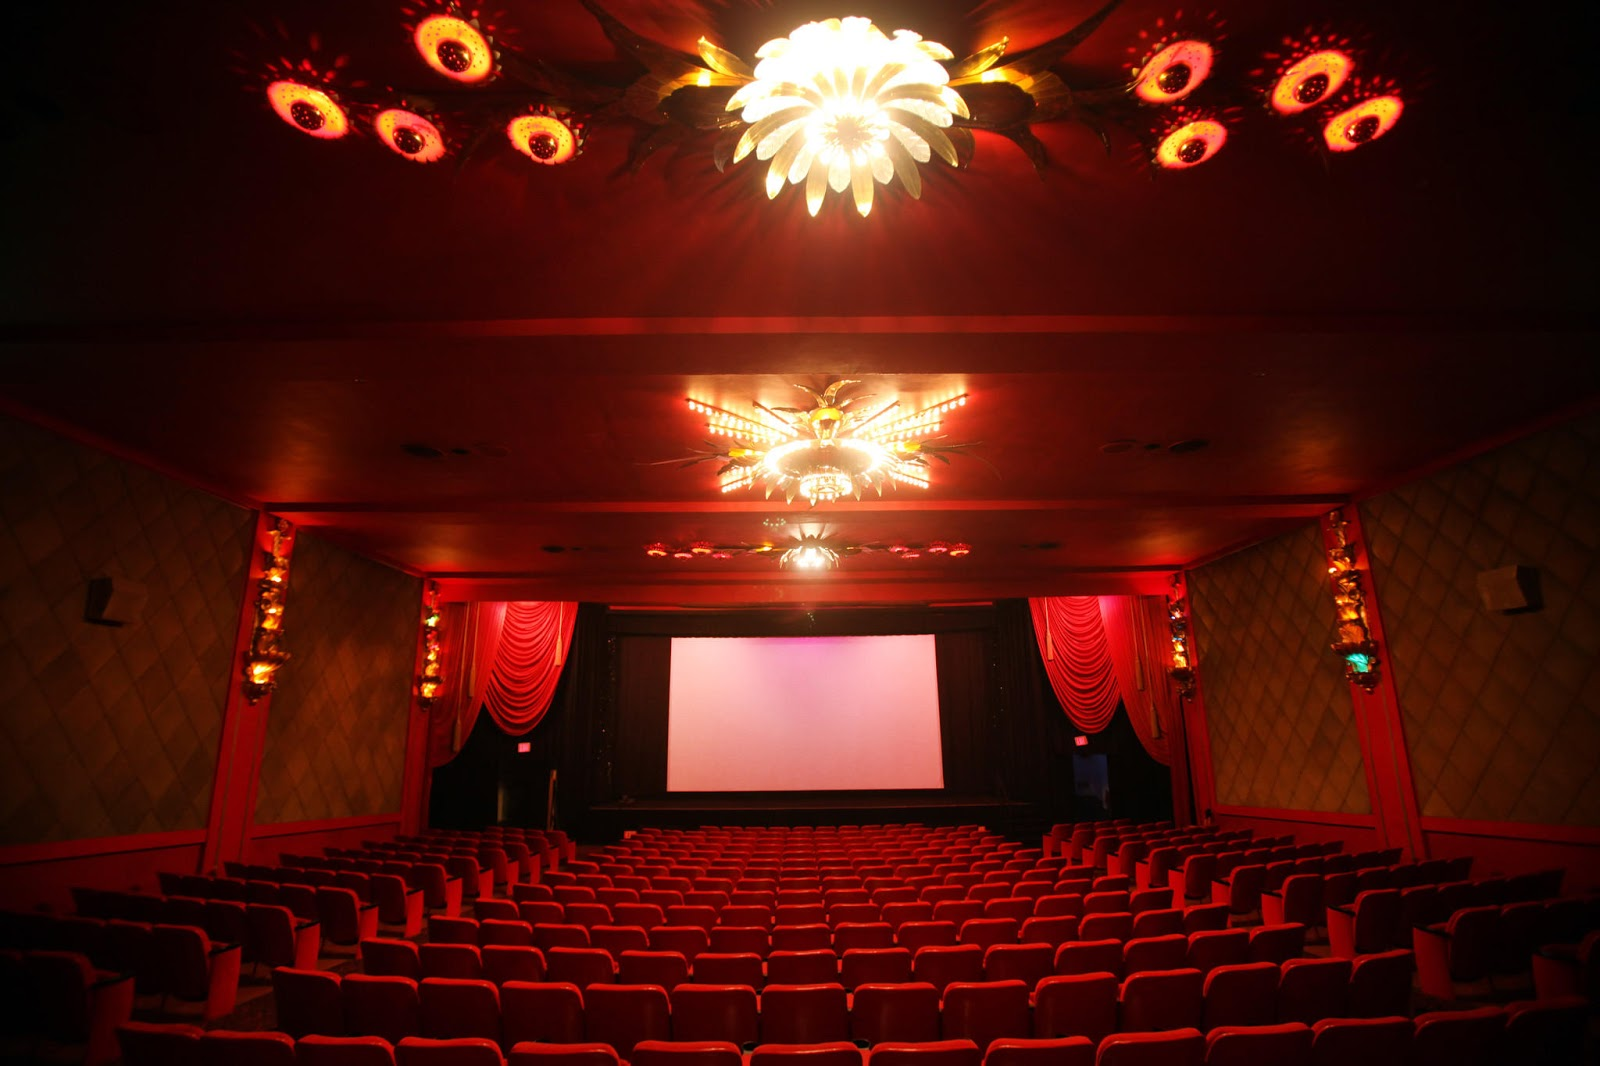 online movie ticket booking in cinema theaters in